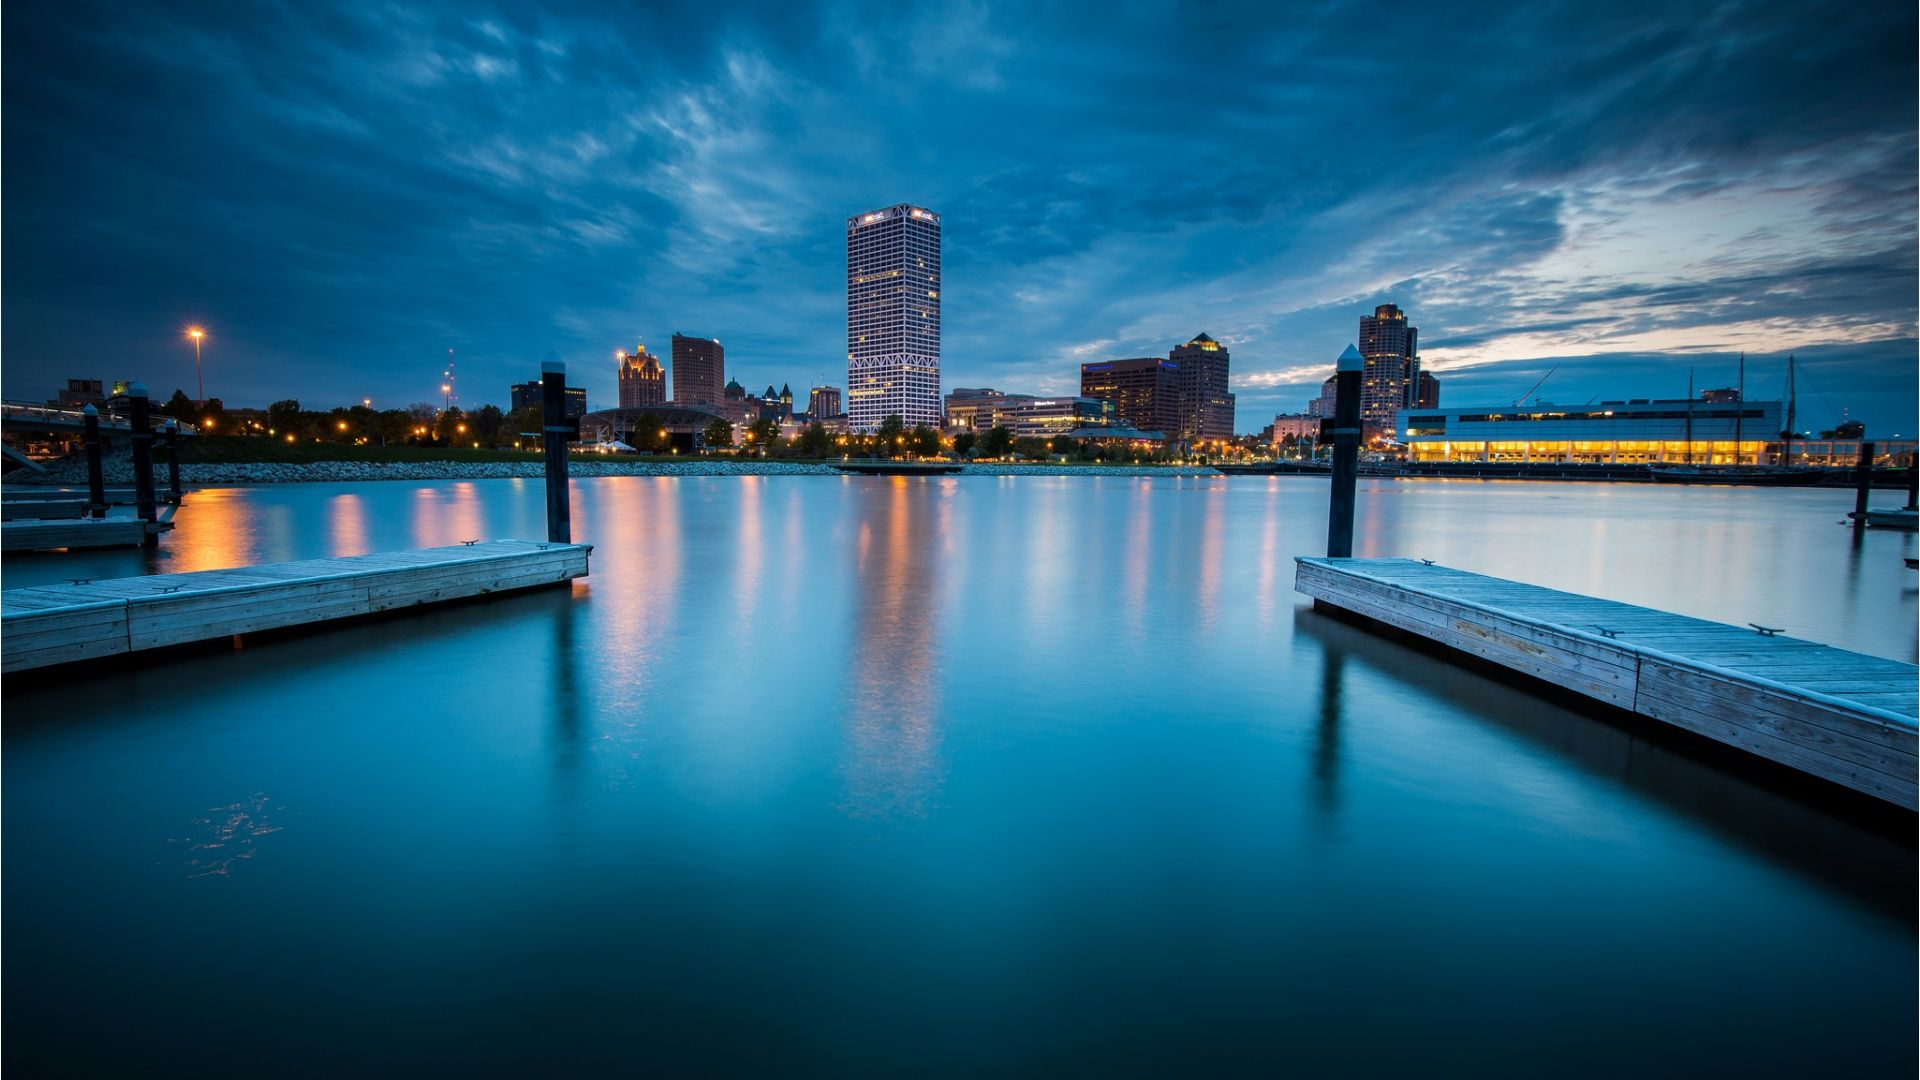 Find out: Milwaukee City Night wallpaper on http://hdpicorner.com/